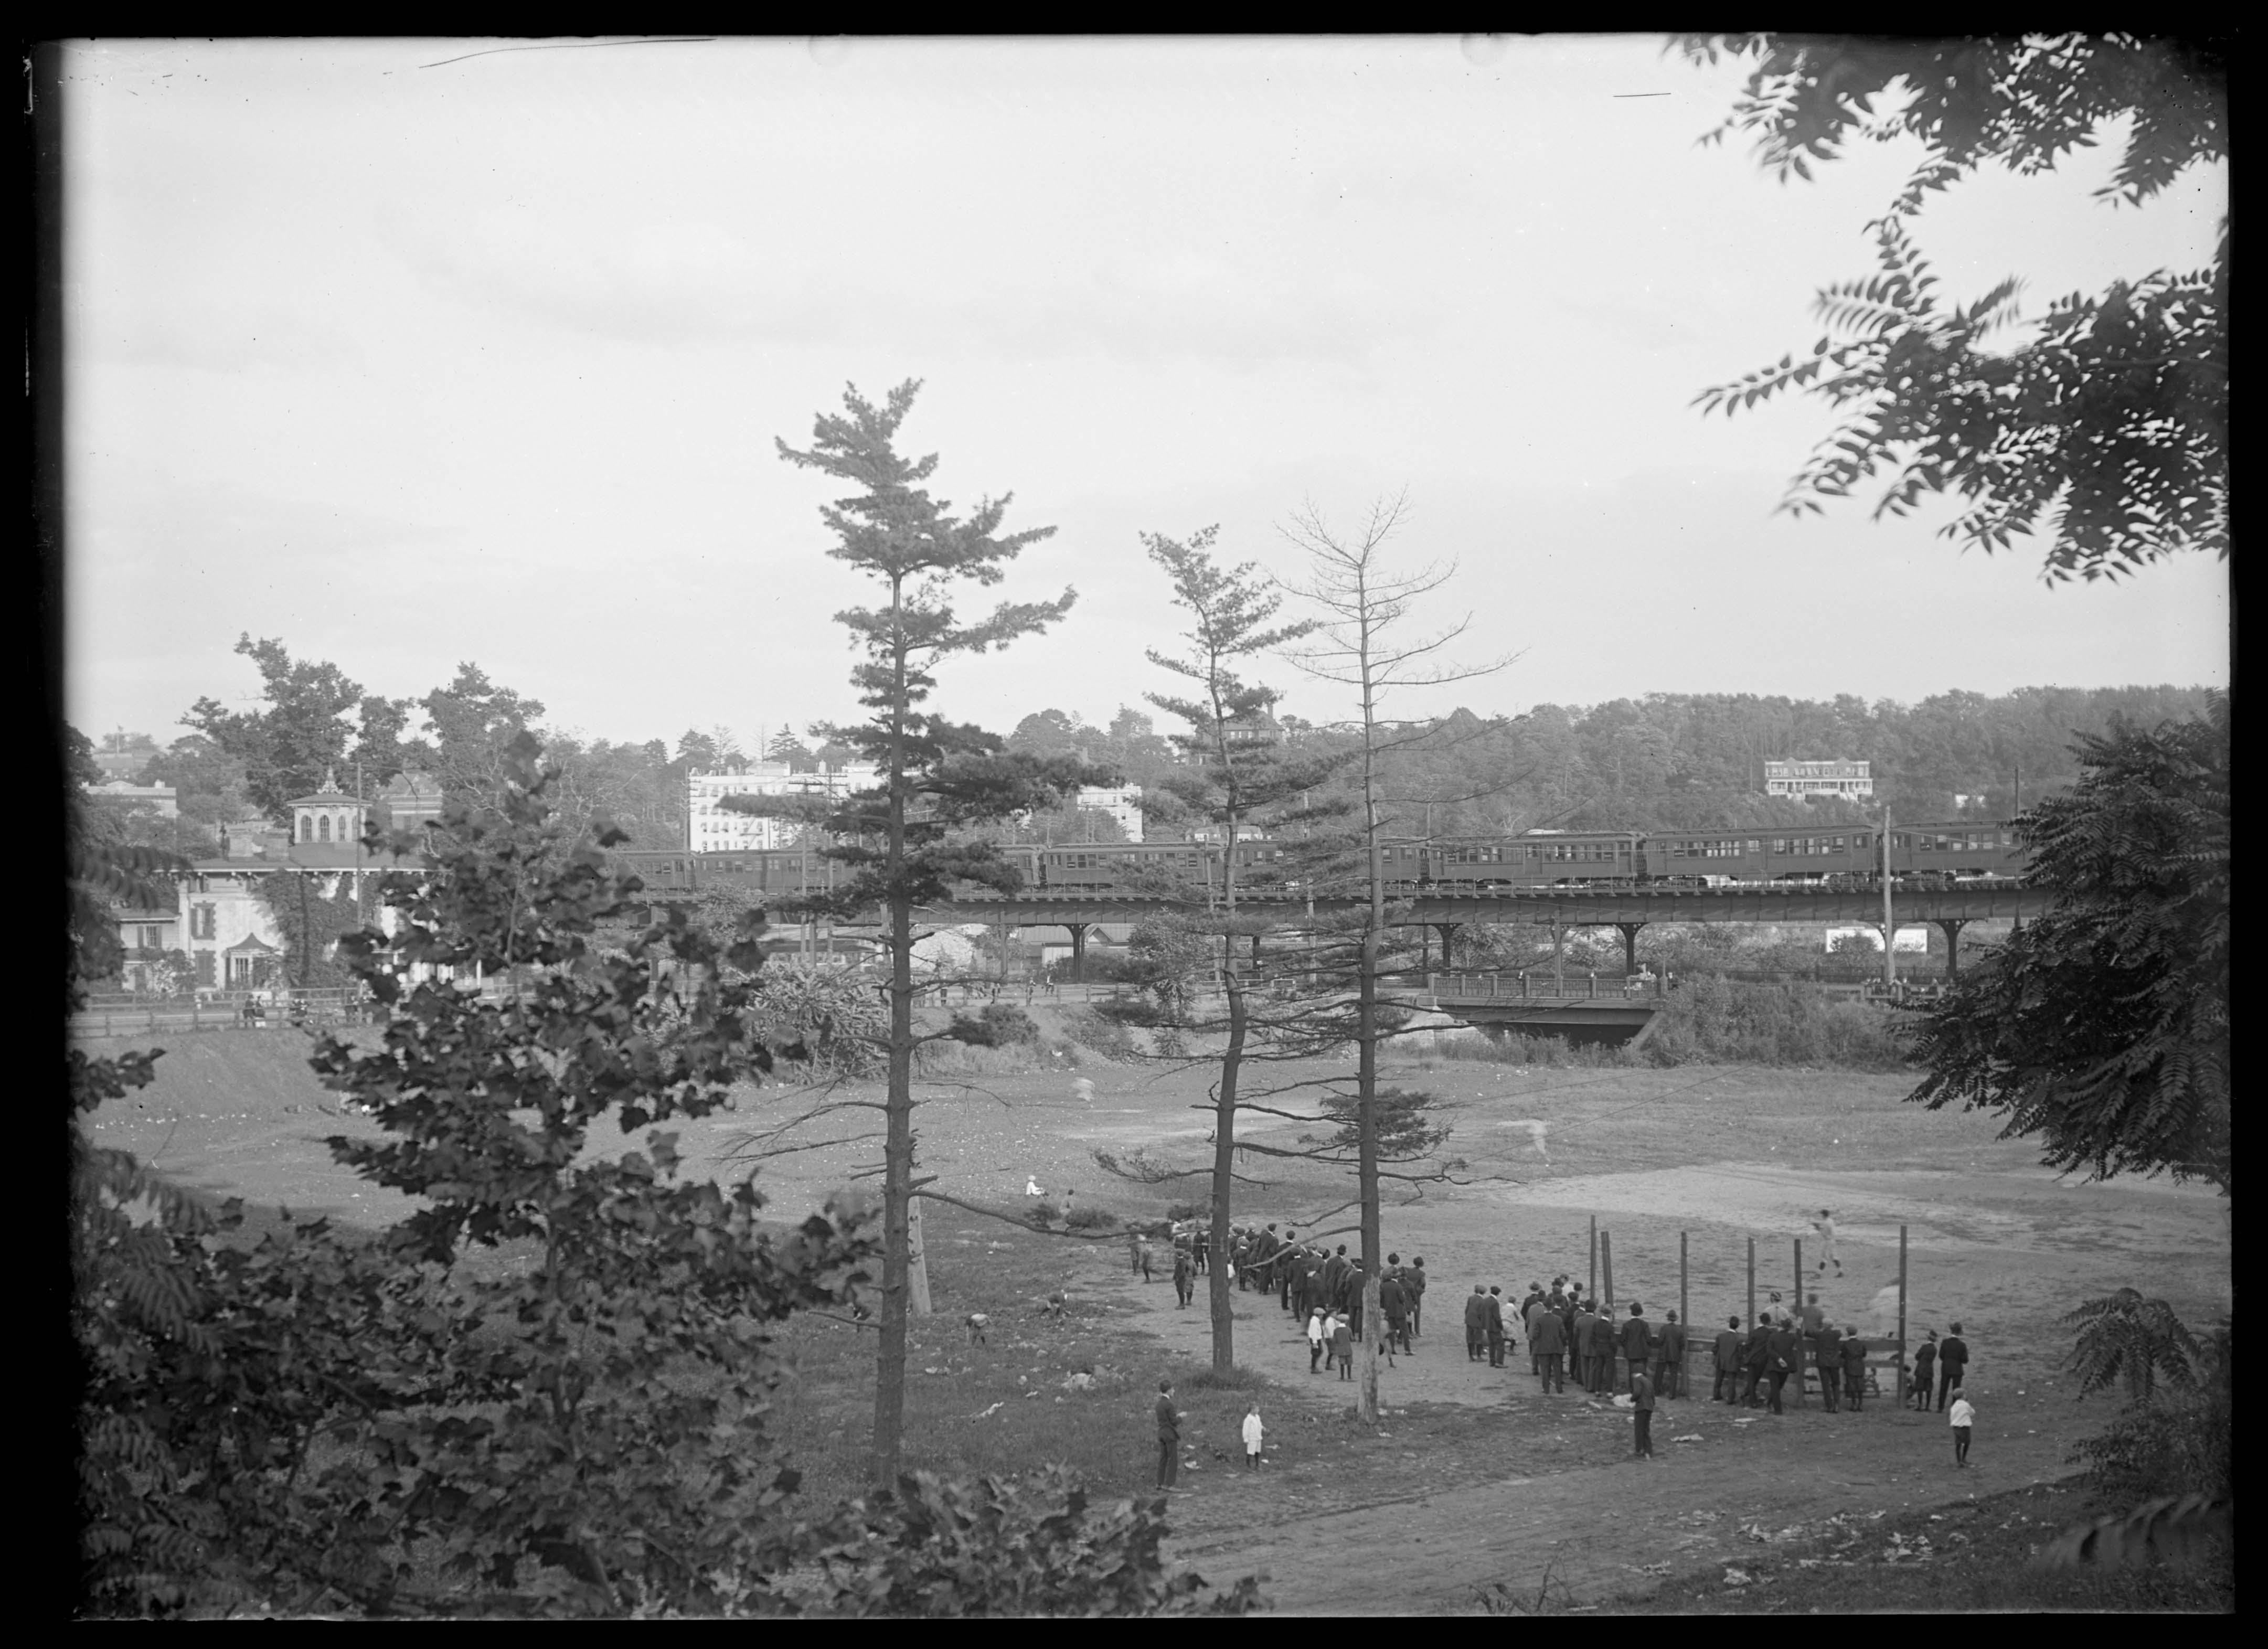 View of Marble Hill Avenue, with a baseball diamond below and elevated train tracks, Bronx, New York City, 1916.